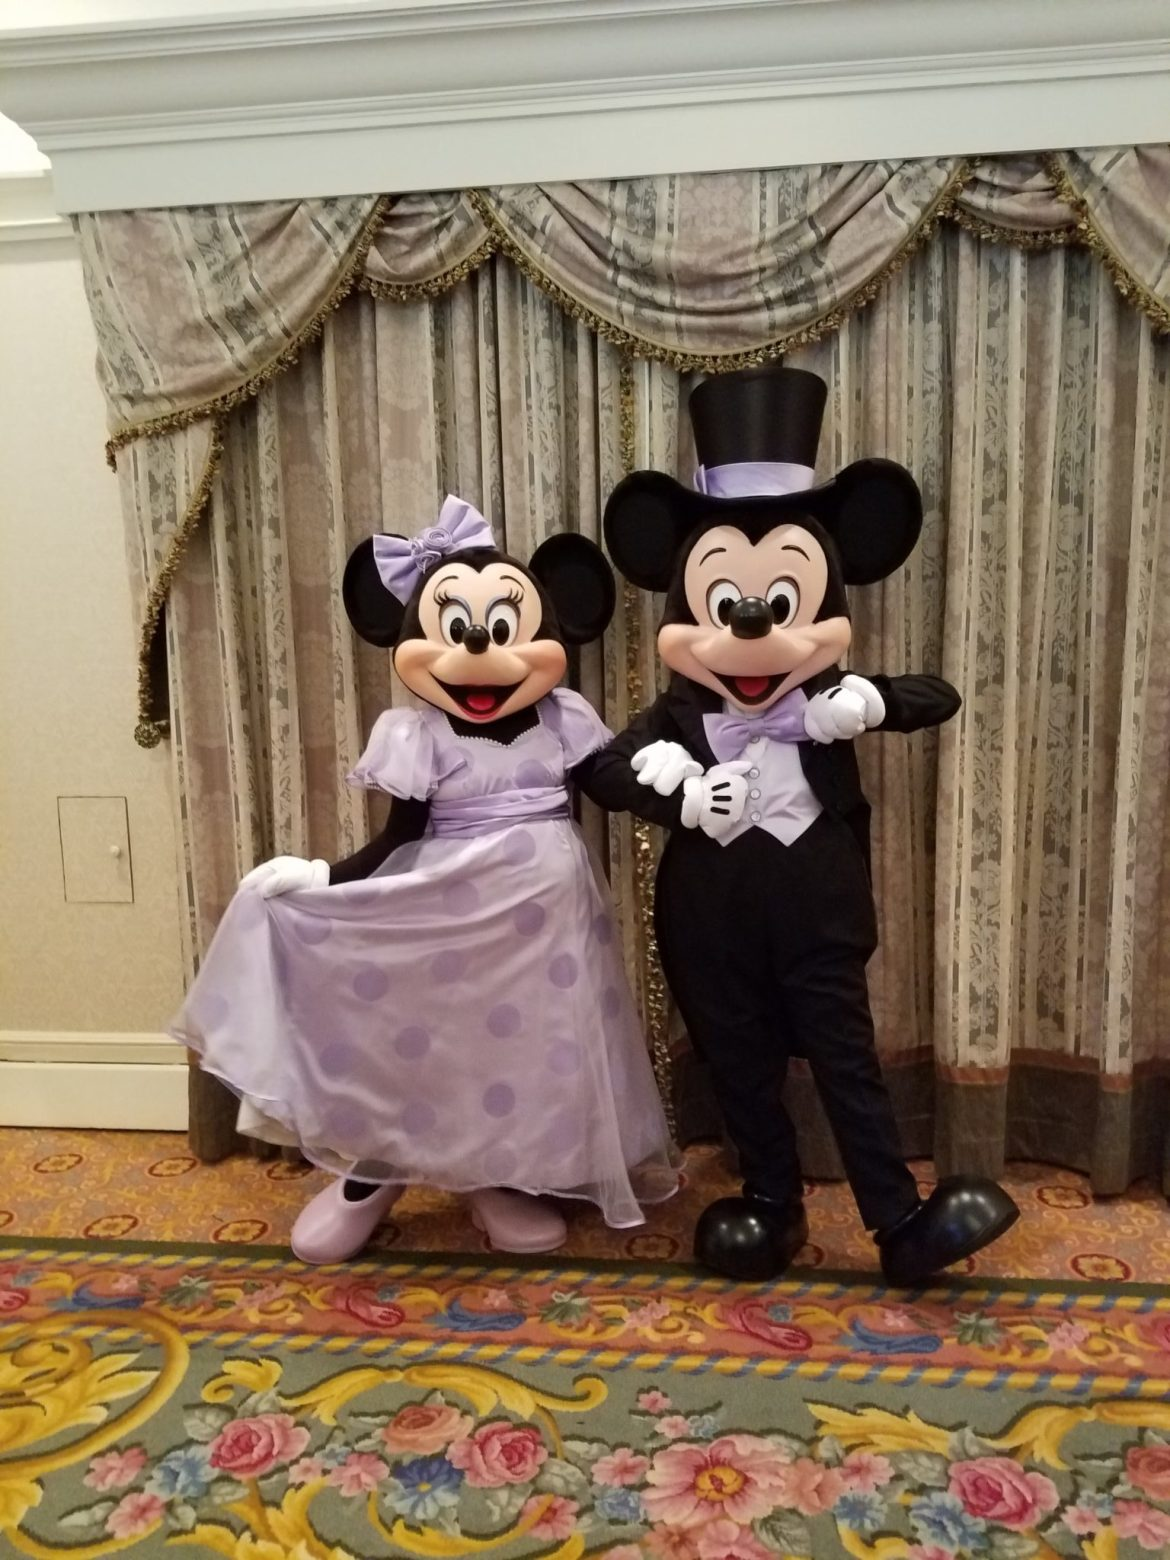 A Guest Perspective On Attending A Whimsical Disney Wedding